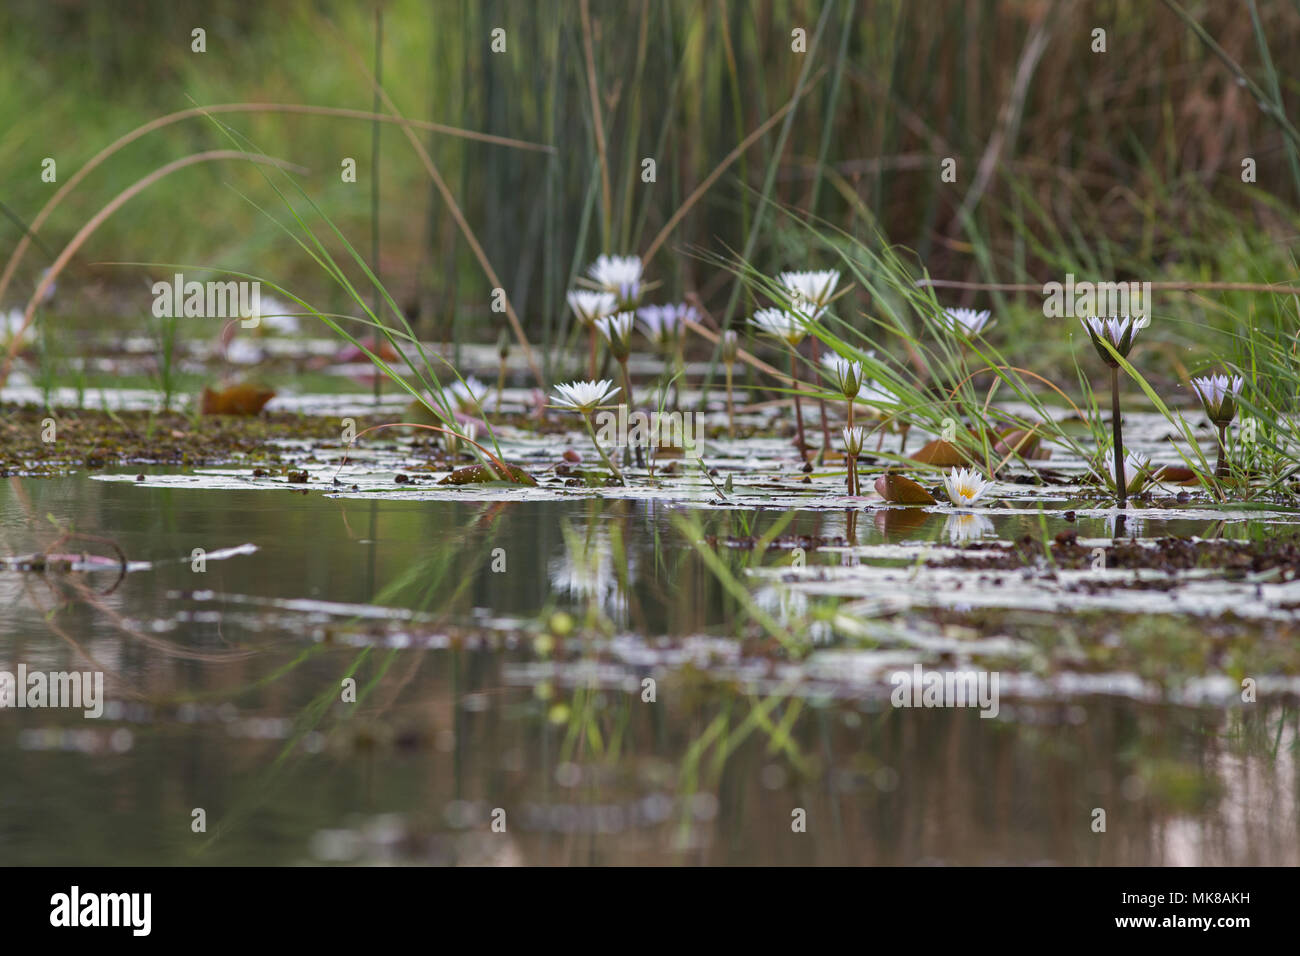 Waterlily (Nymphaea nouchali caerulea). Bud, buds and open flower, and reflections on water surface. Freshwater pool. Okavango Delta. Botswana, Africa - Stock Image